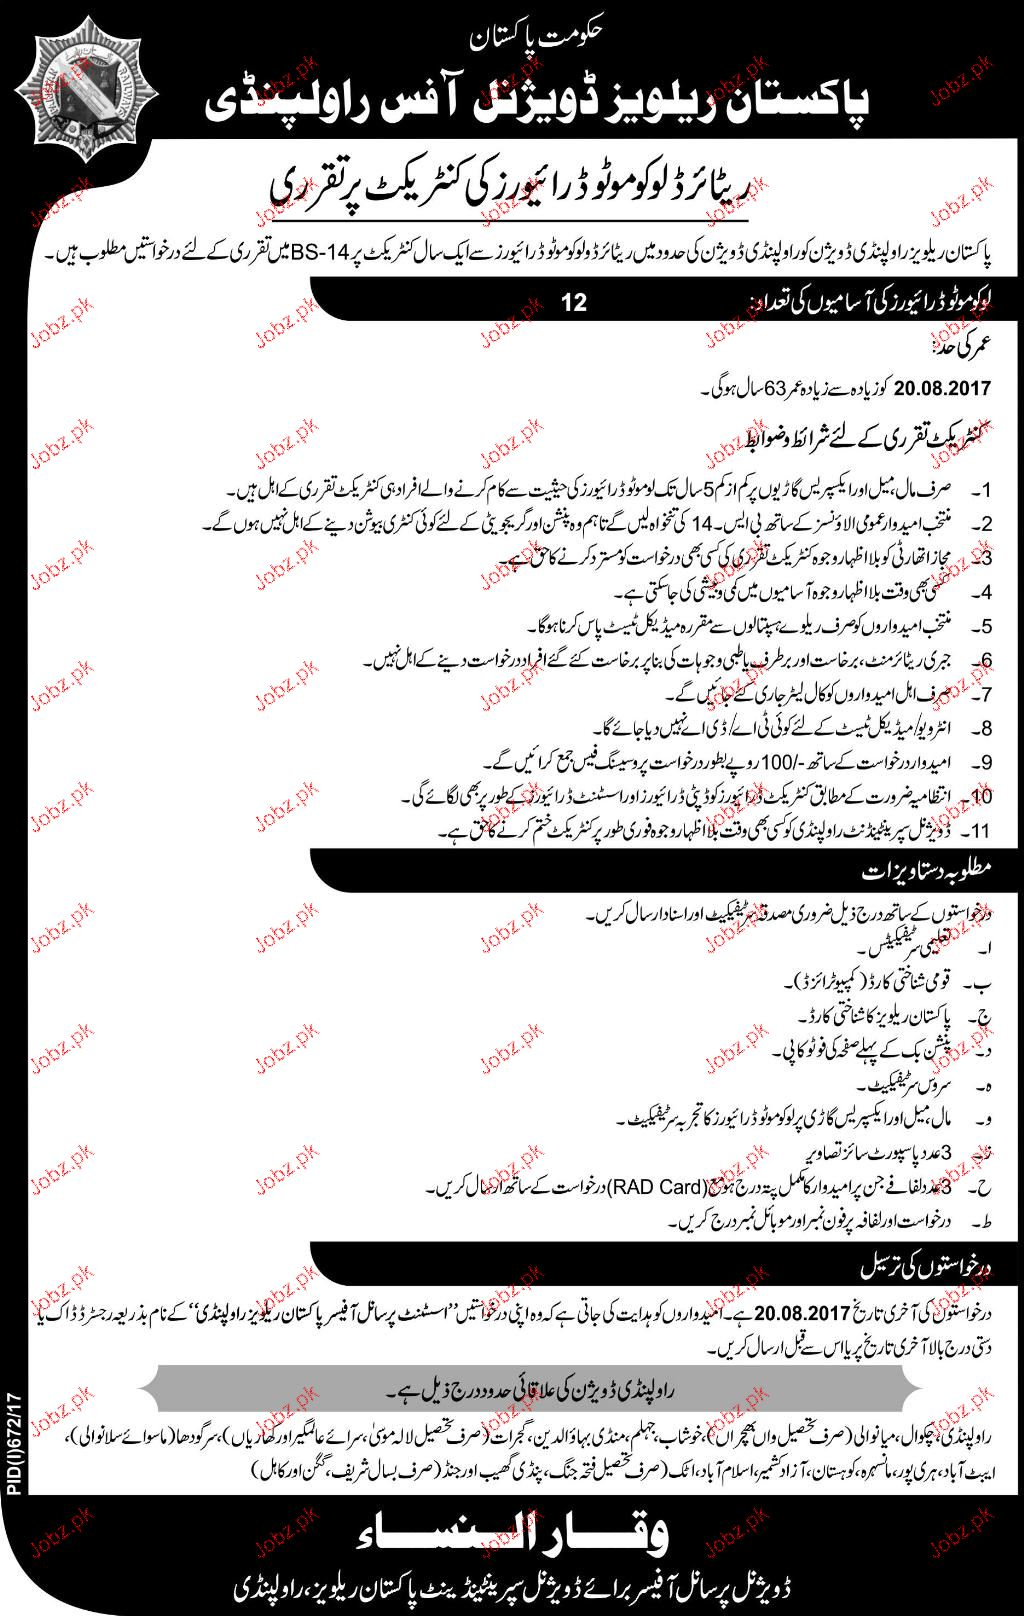 Pakistan Railways Divisional Office Jobs